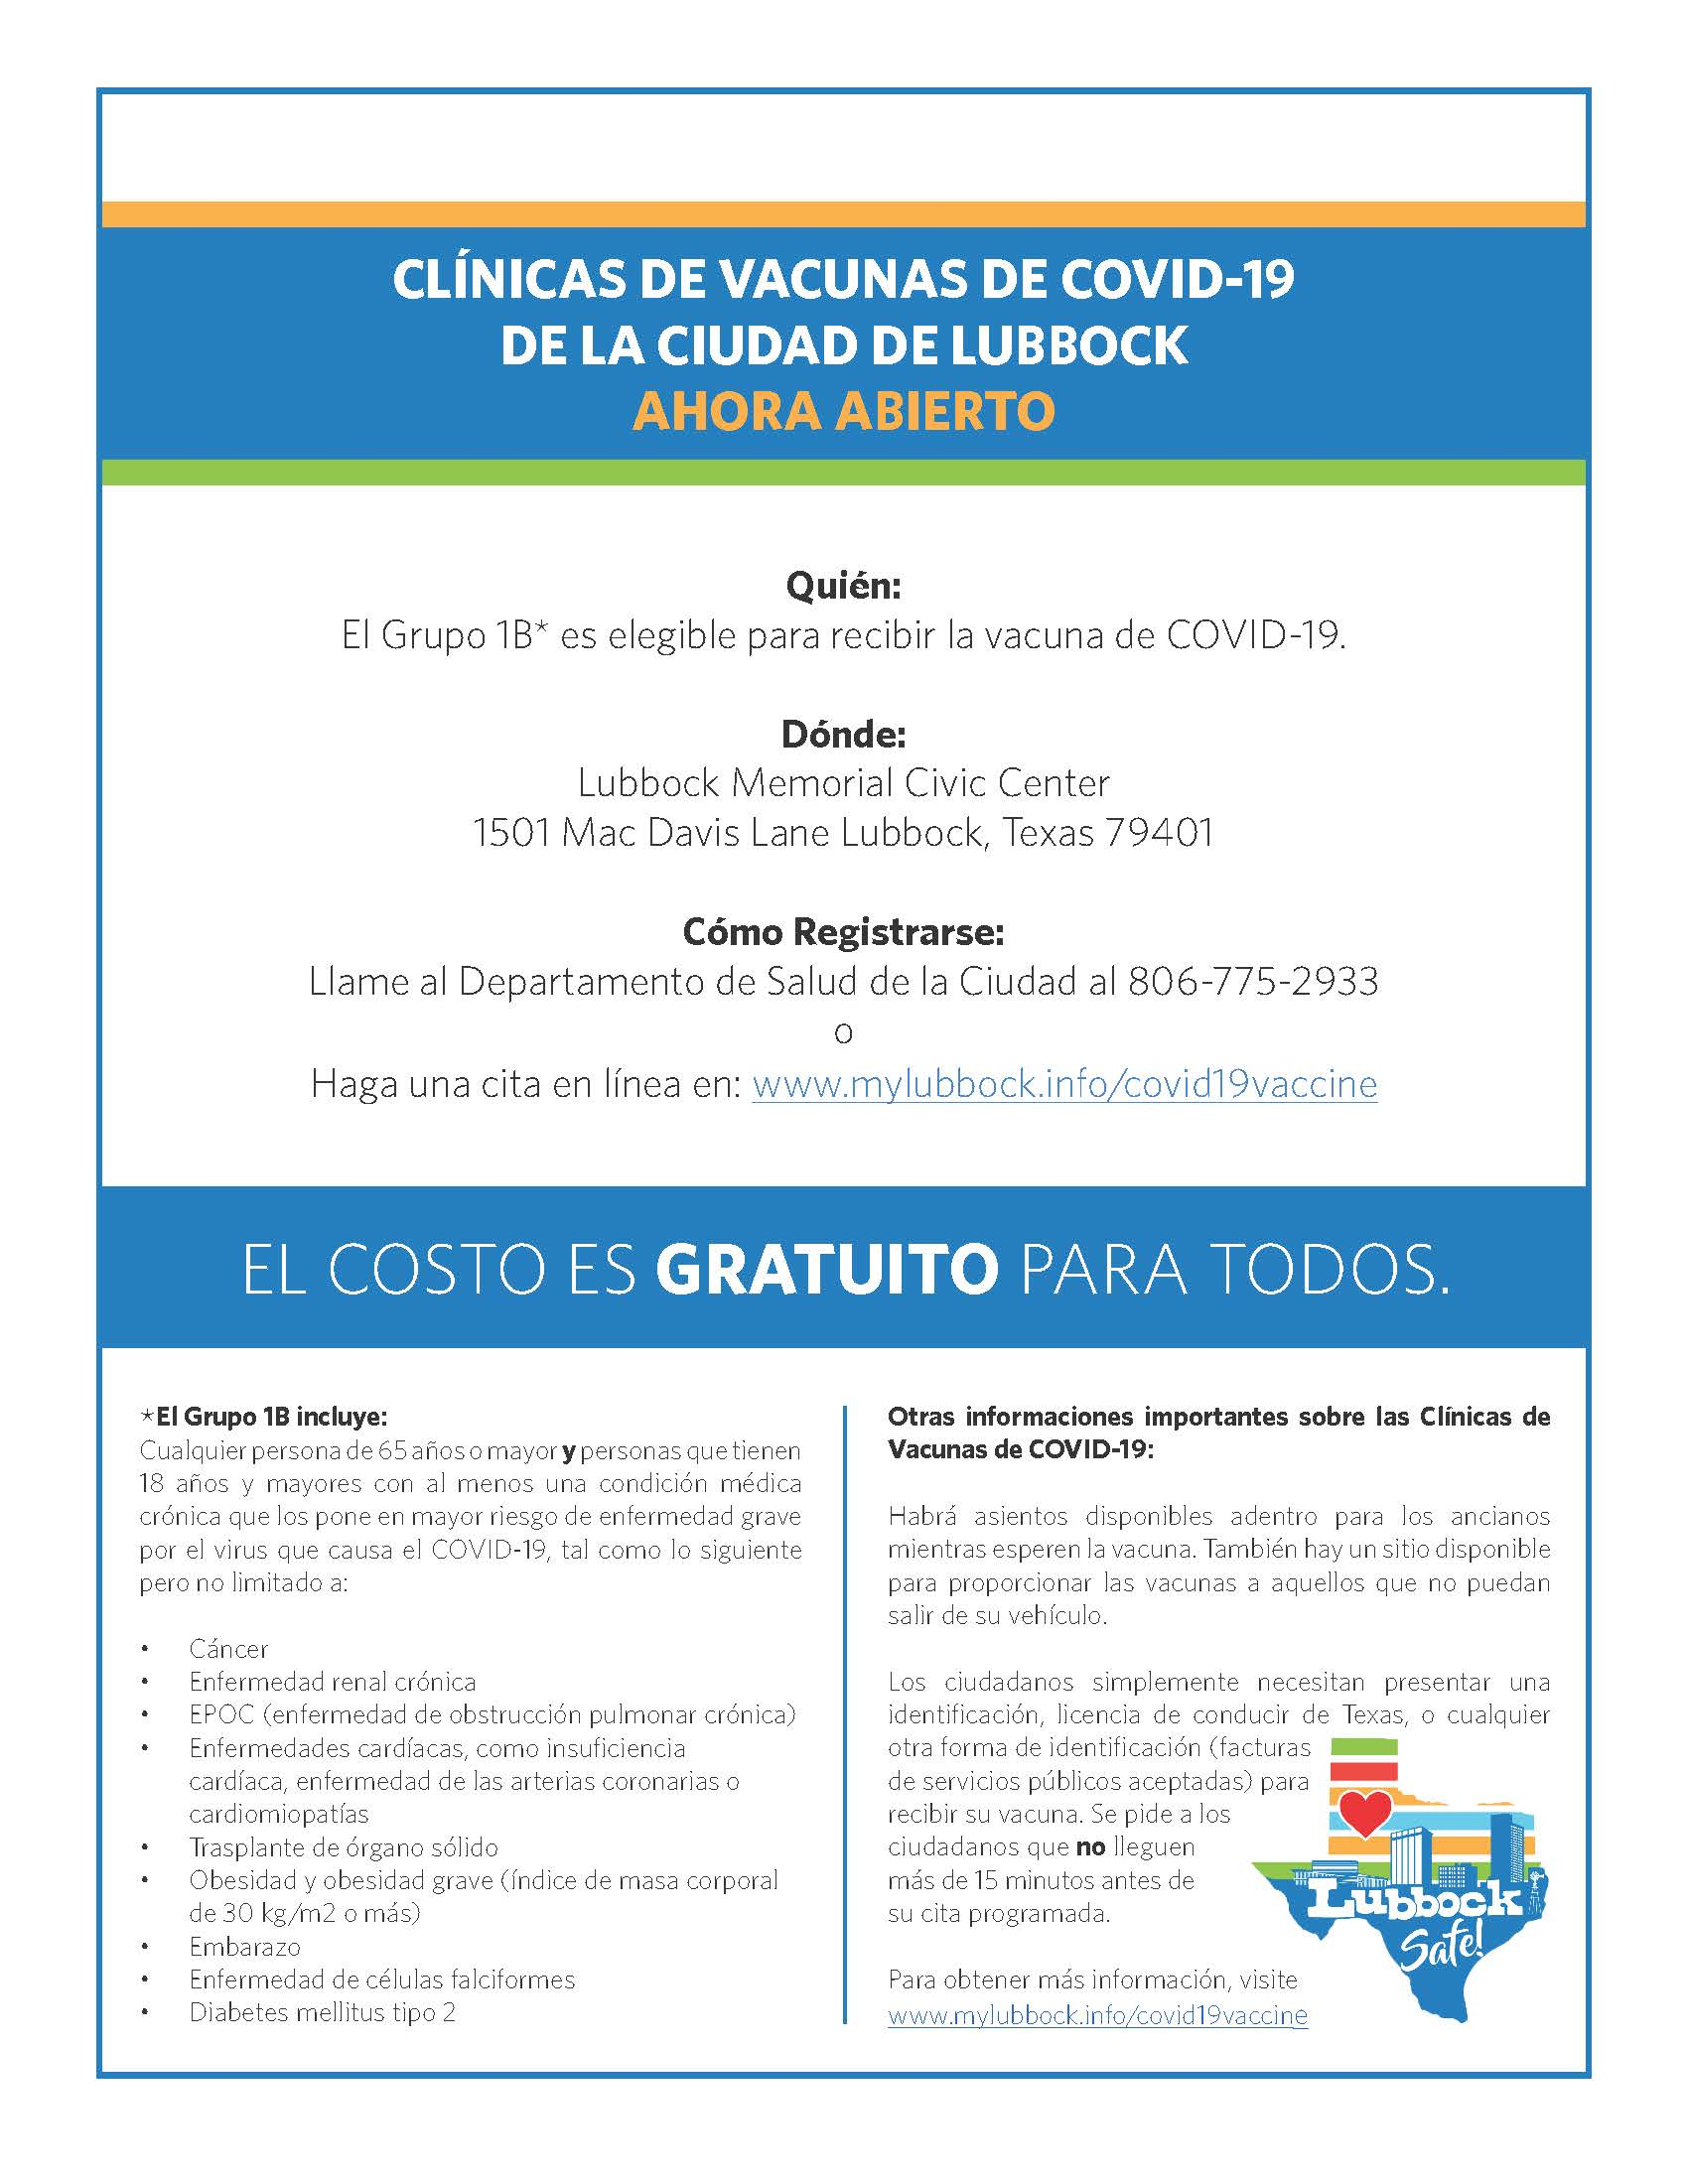 covid vaccine information in spanish